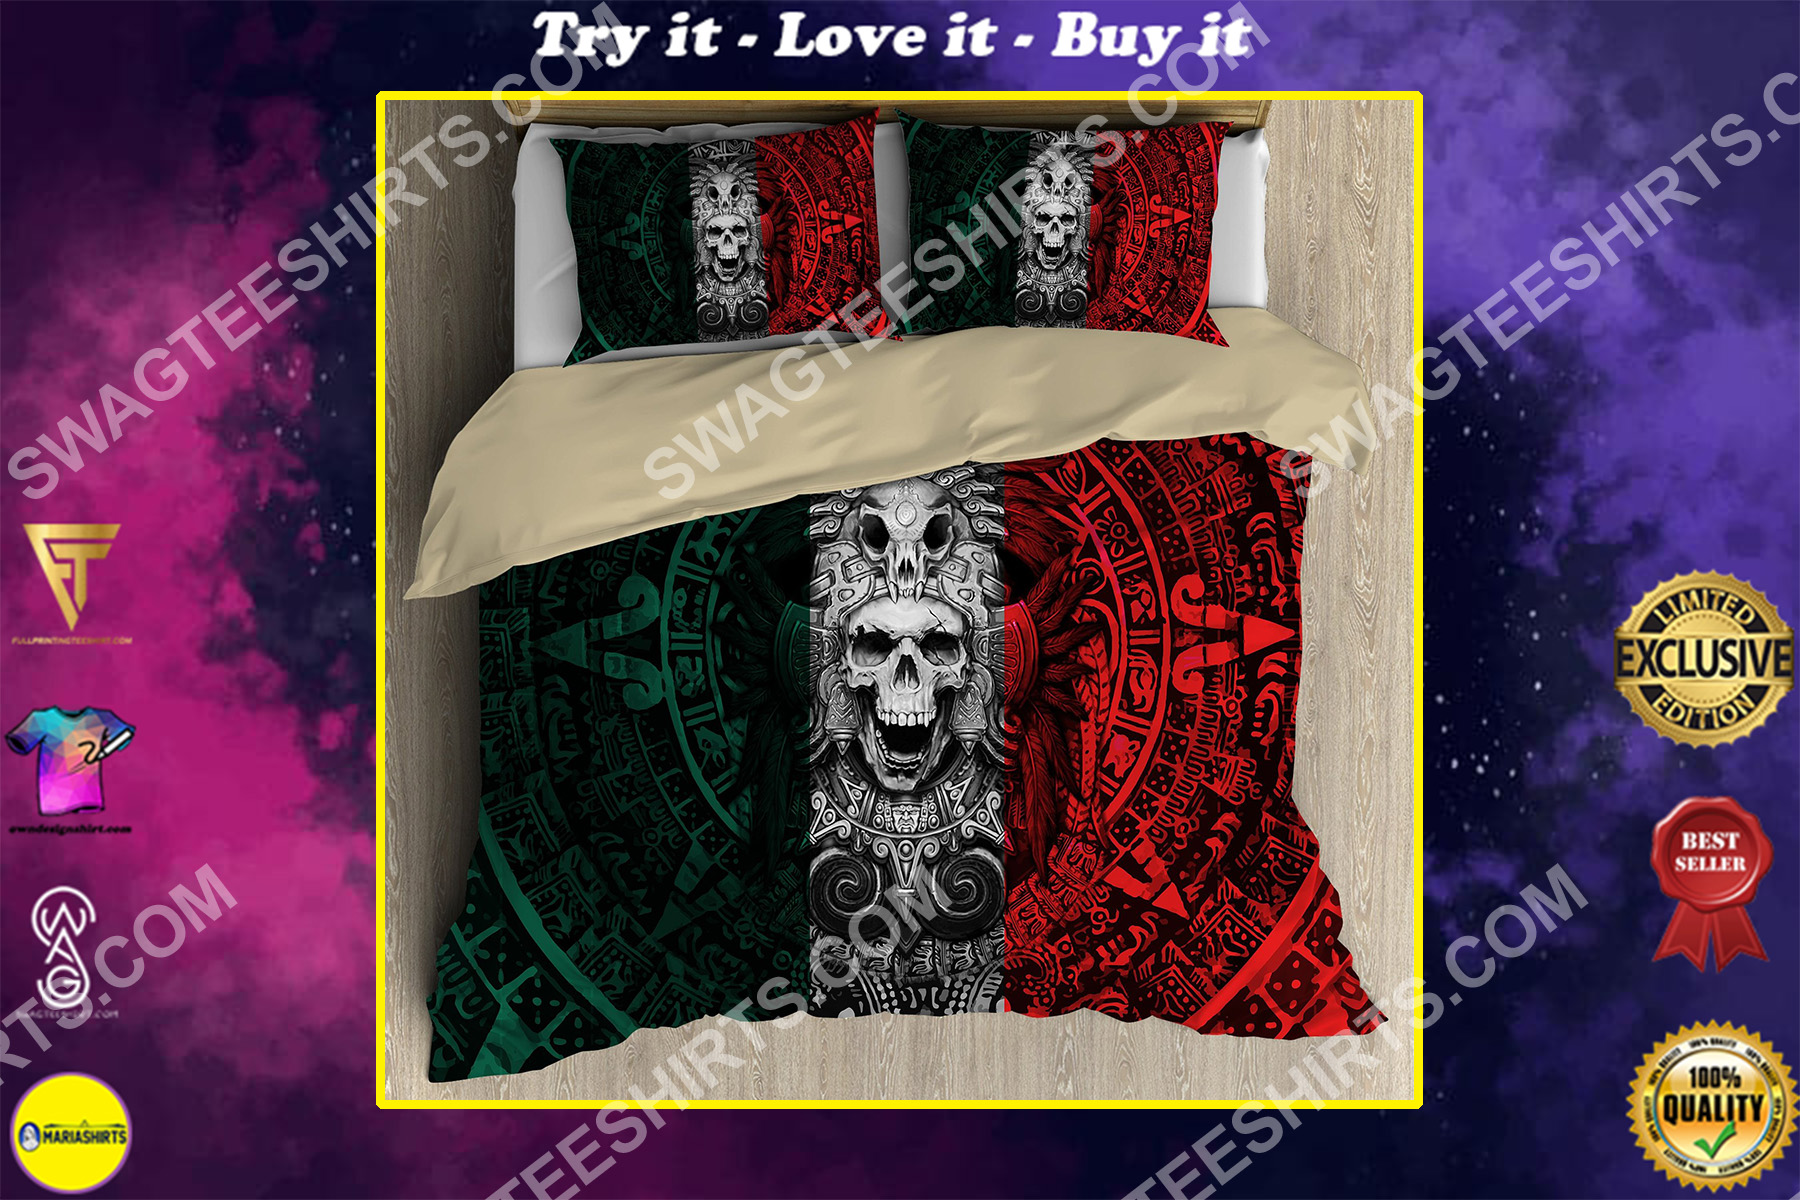 the aztec skull warrior mexico all over printed bedding set